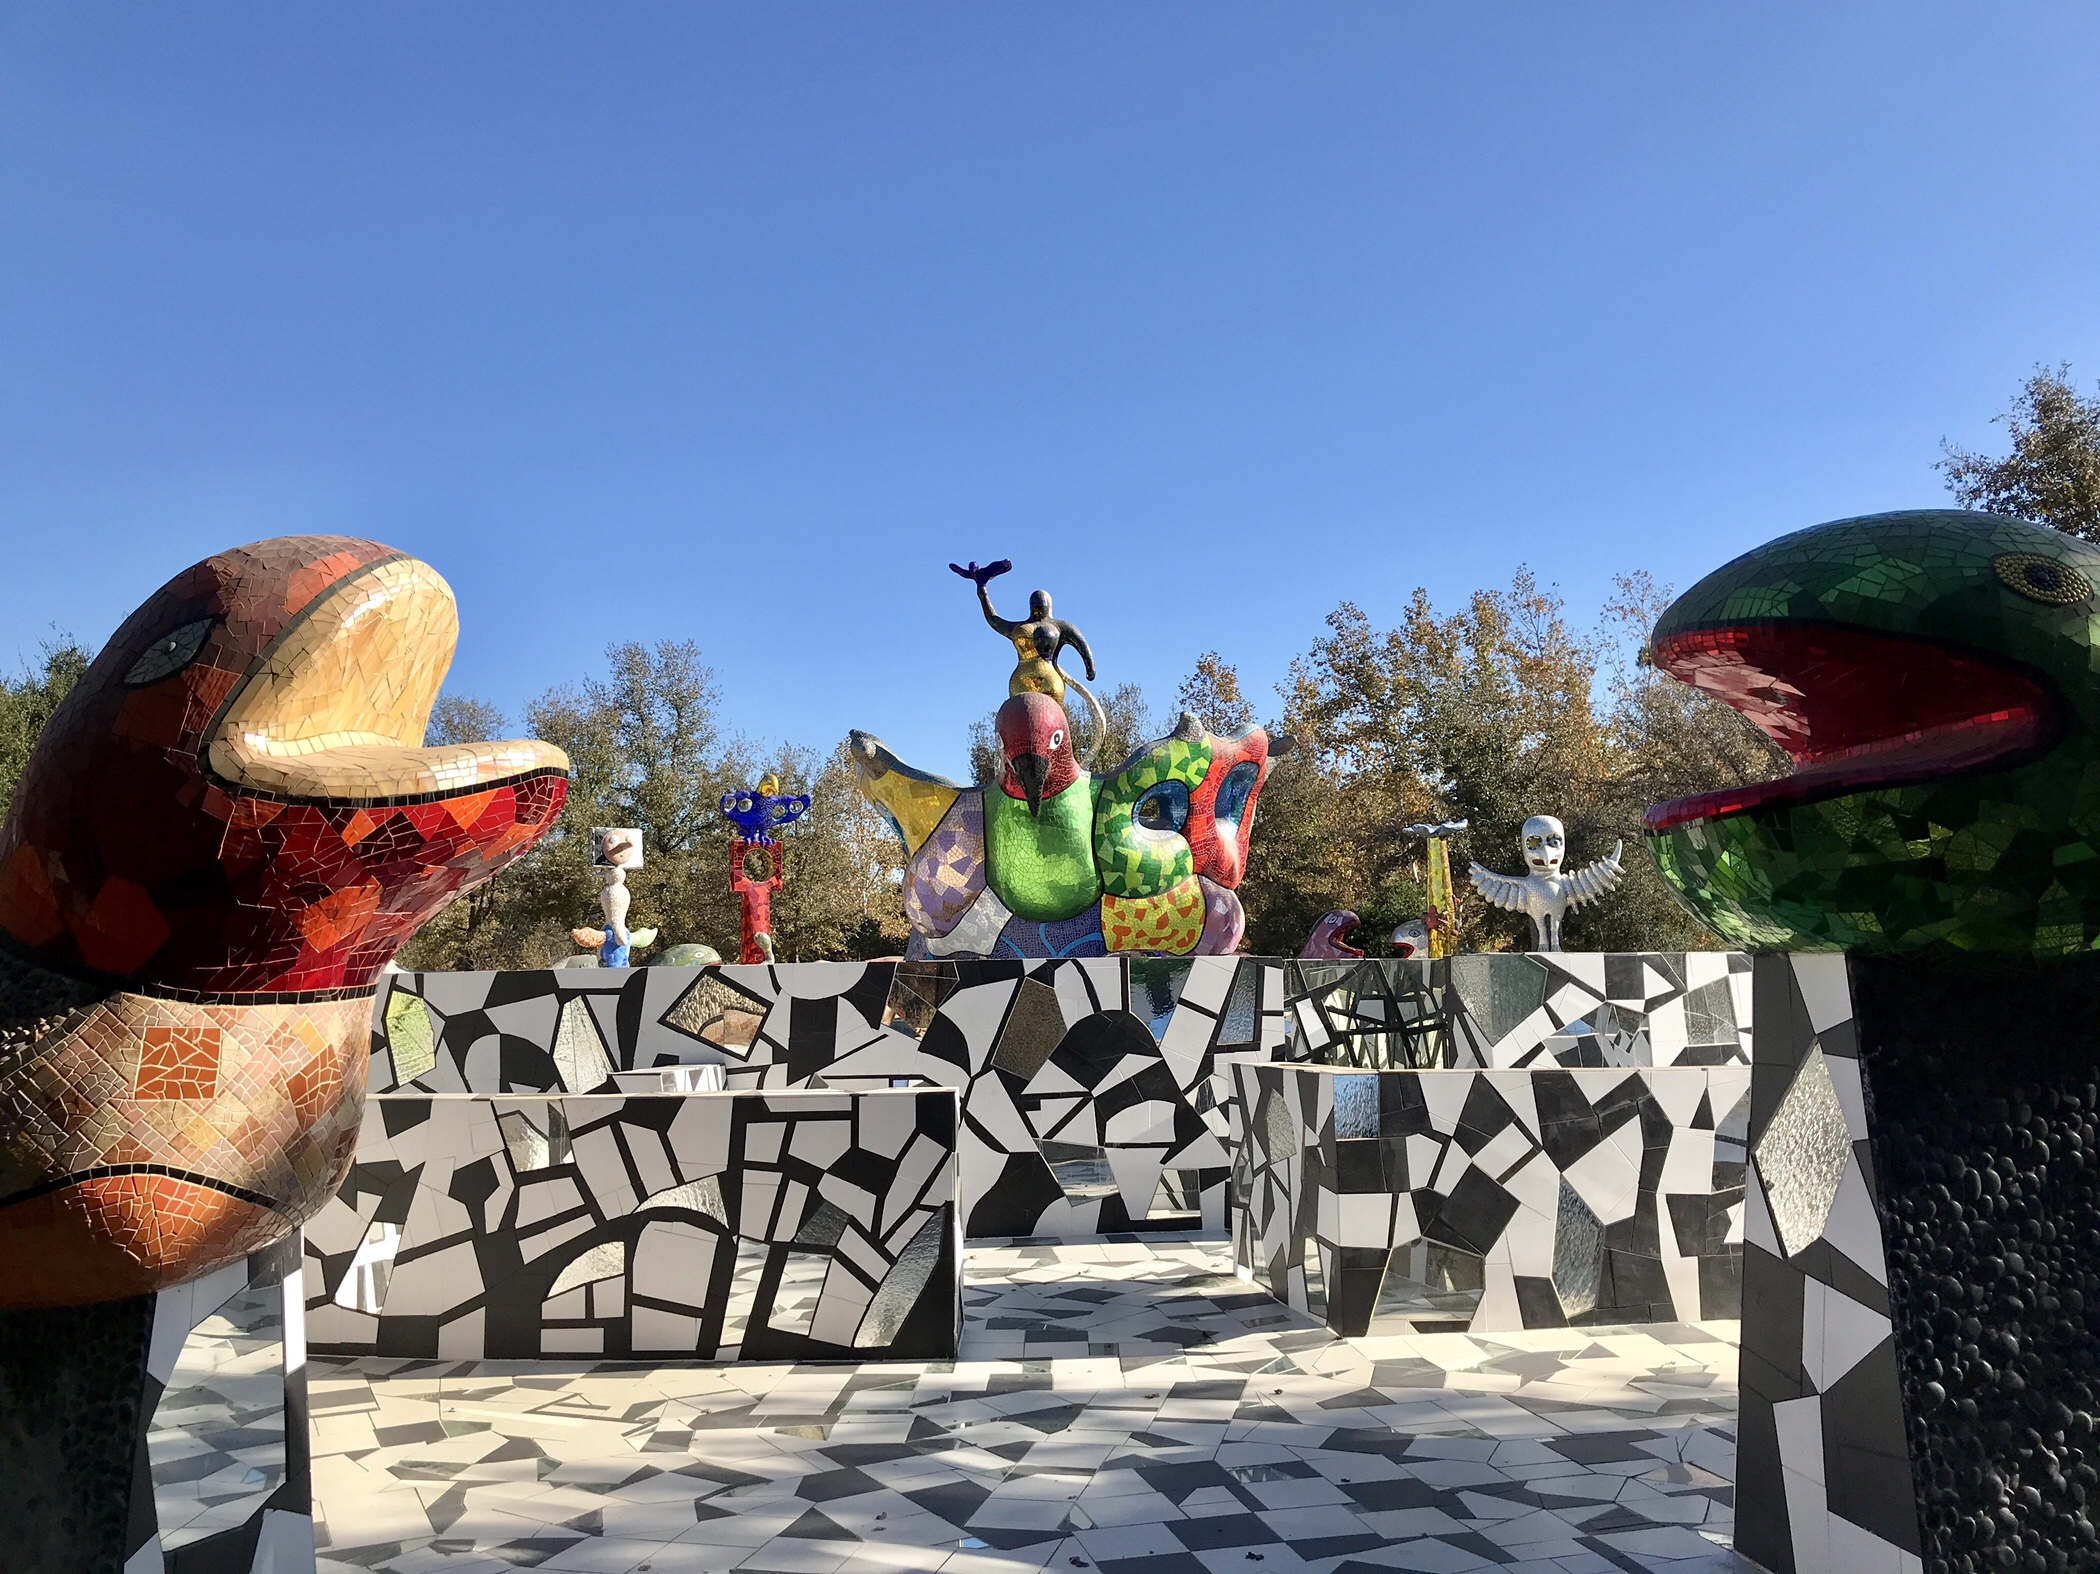 Niki de Saint Phalle: From France to San Diego, With Love